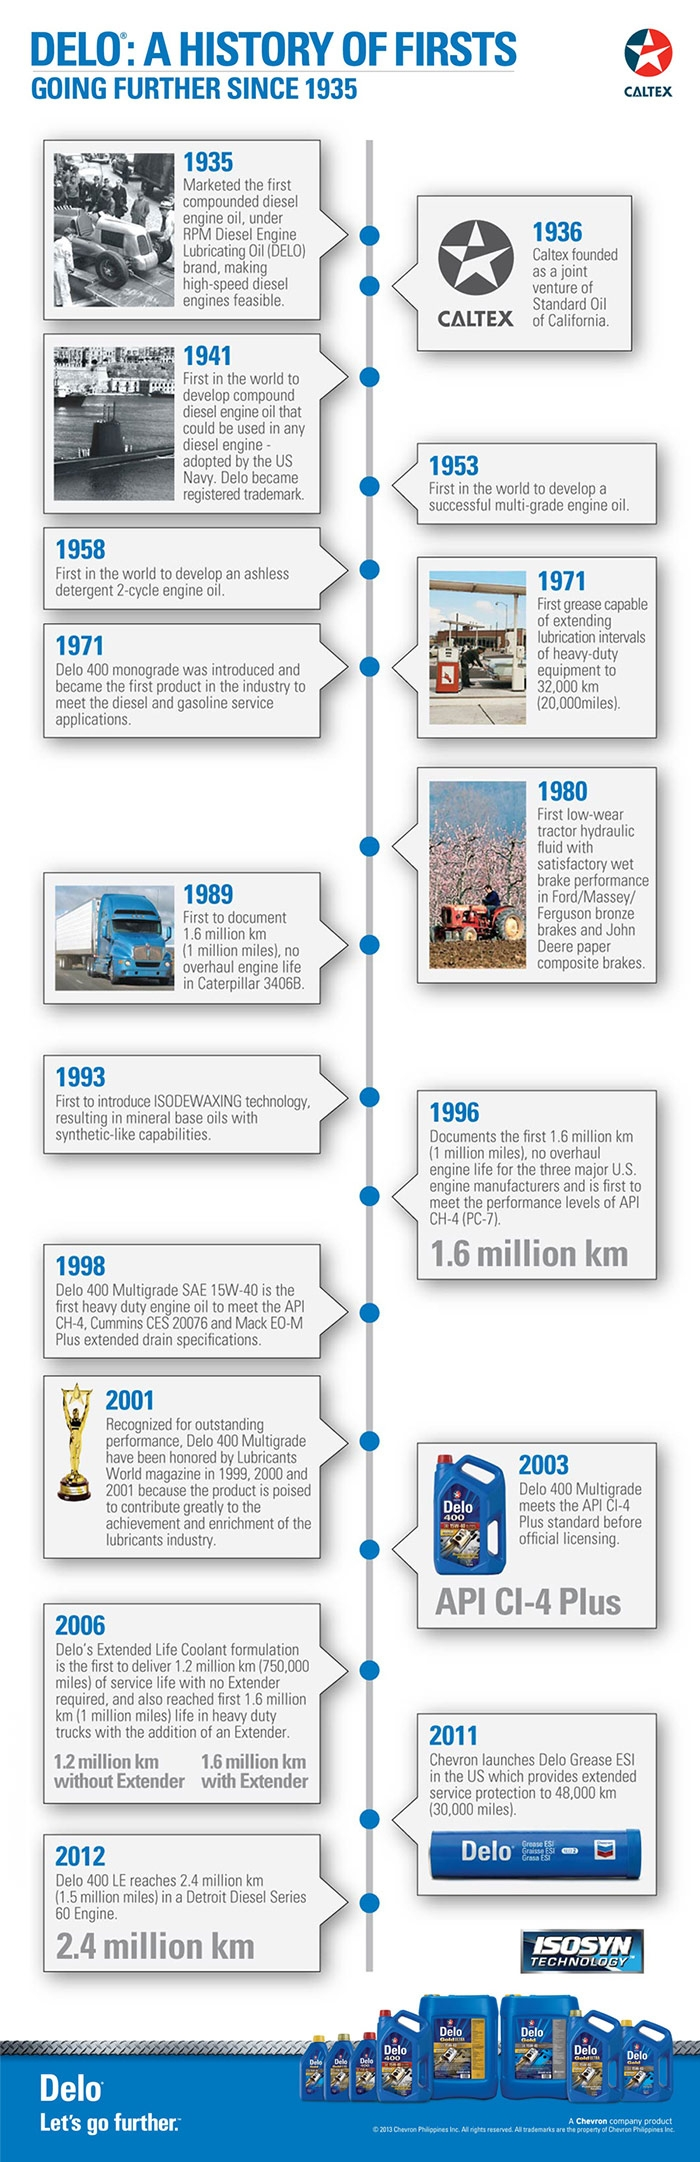 Chevron's infographic on Delo's rich 80-year history | Autodeal